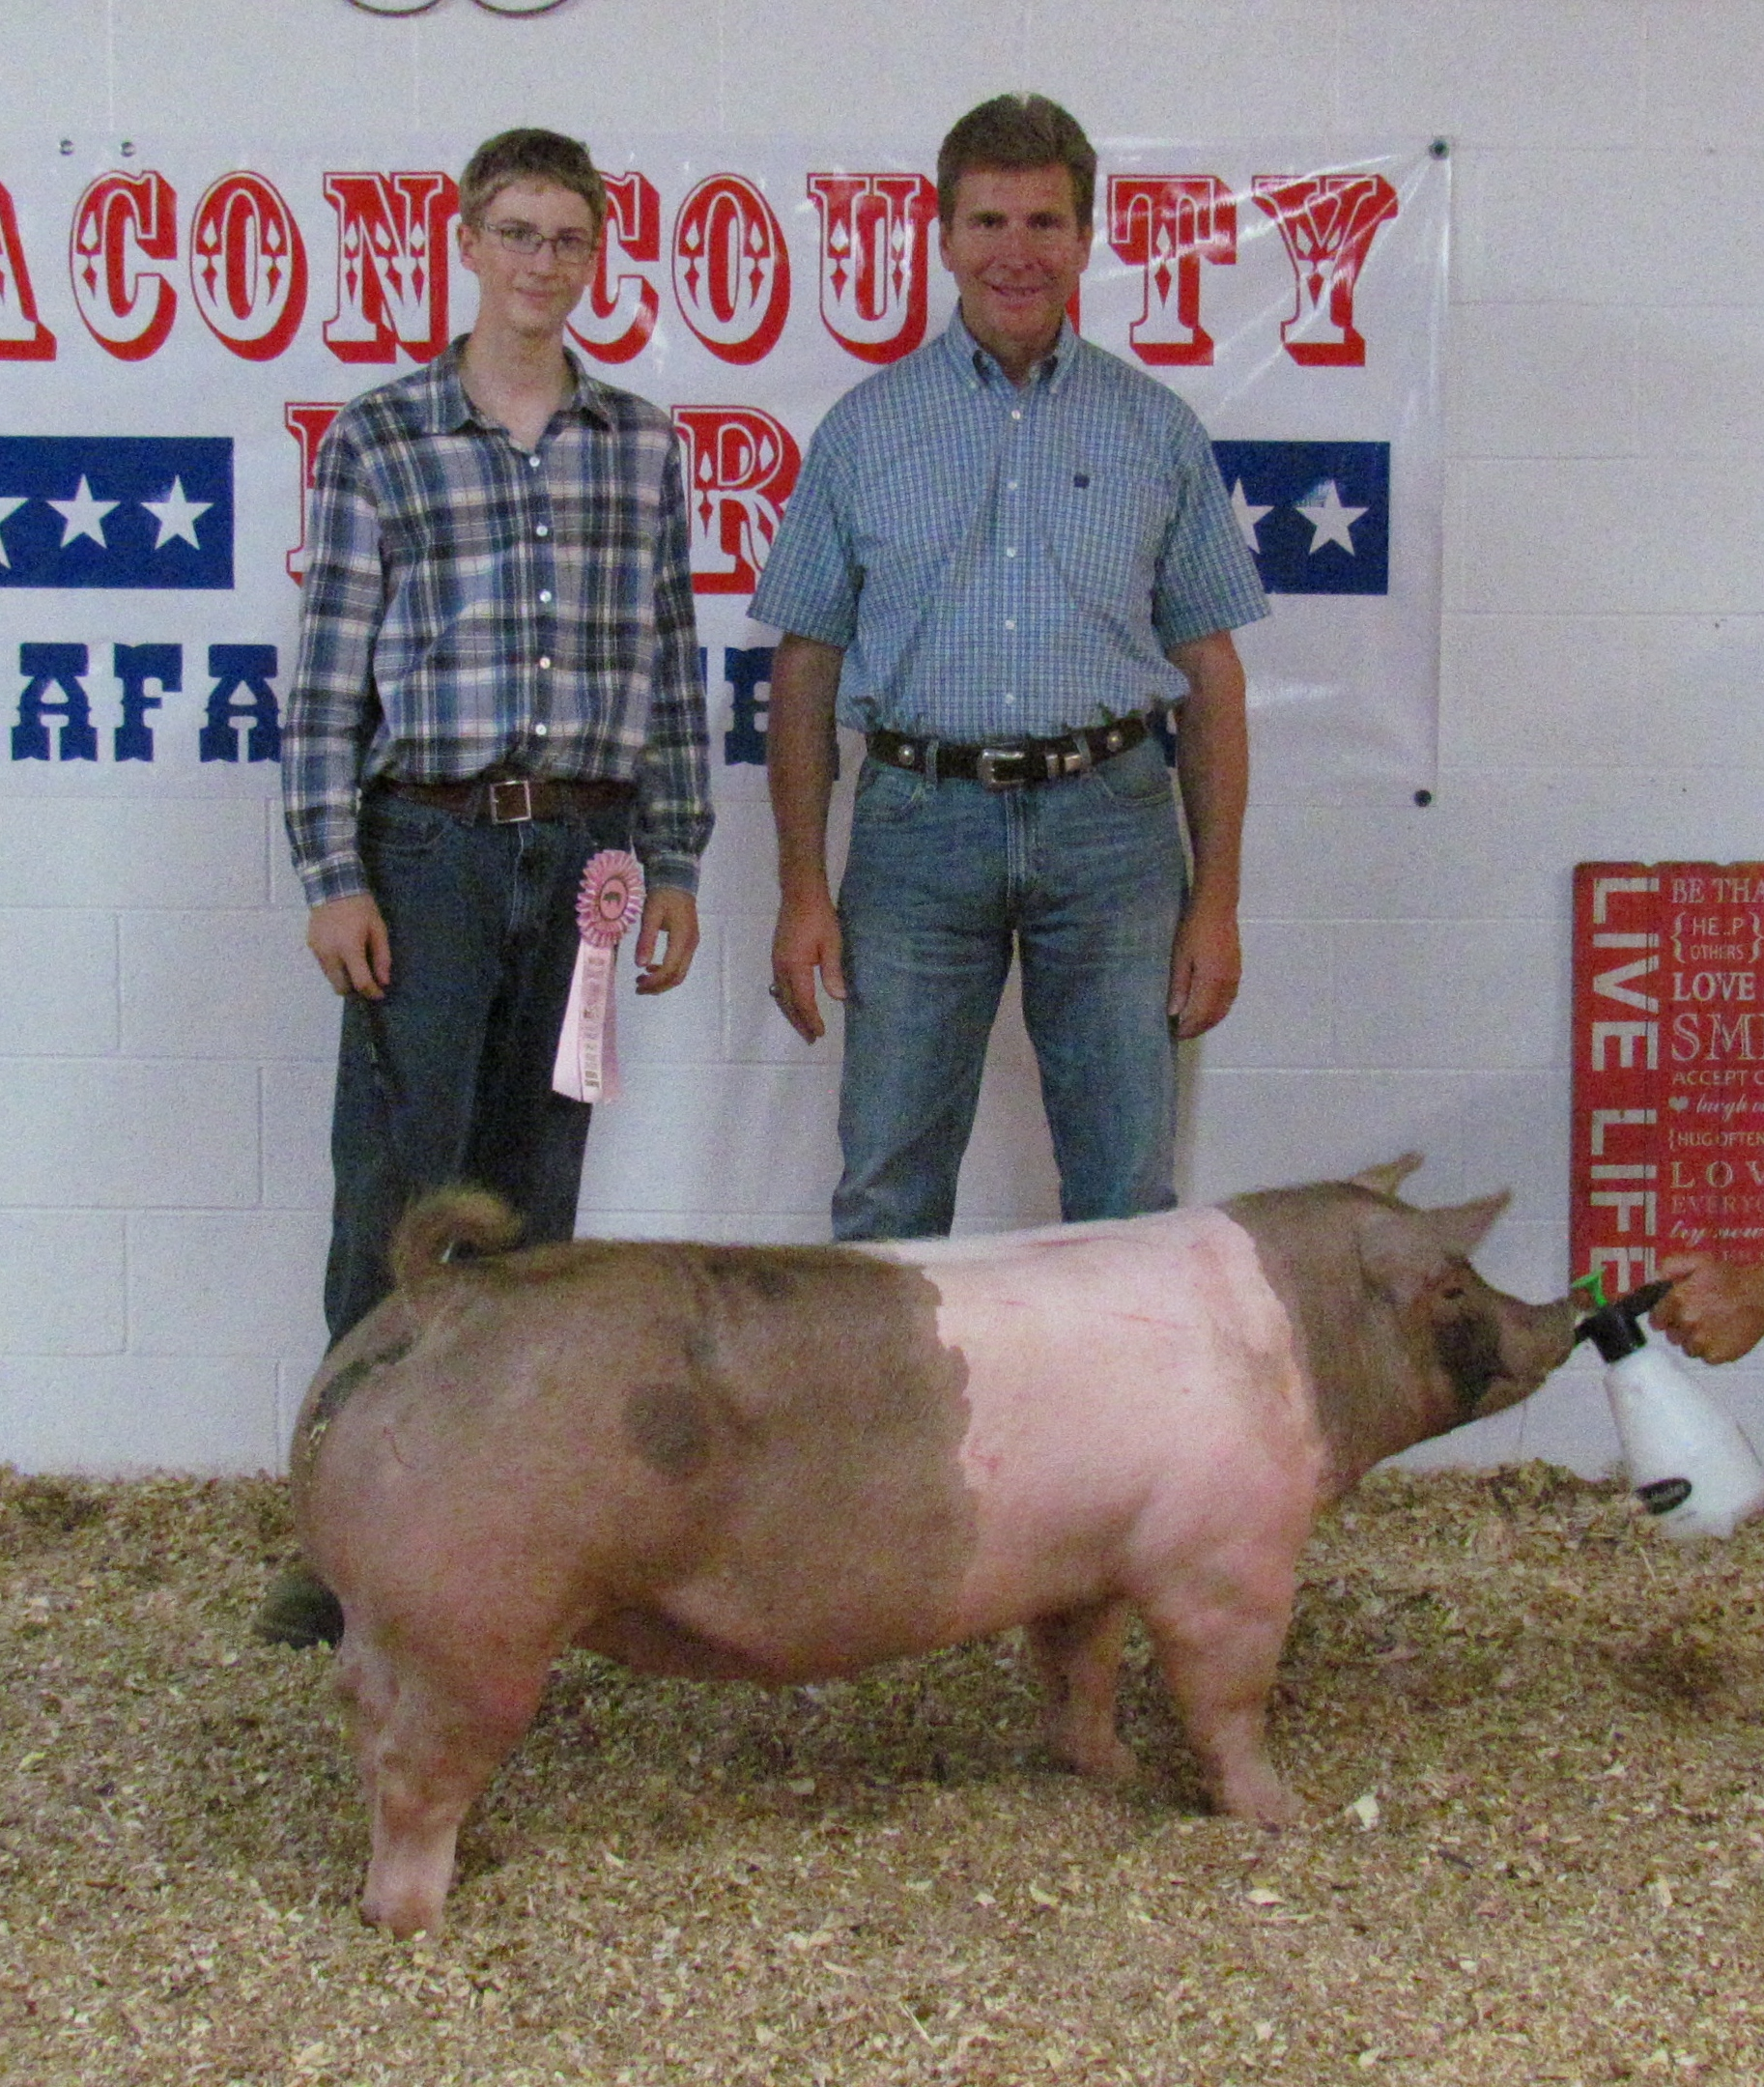 Mertz Family Macon County Fair: Reserve Heavy Weight Champion 1st, 2nd and 3rd in class